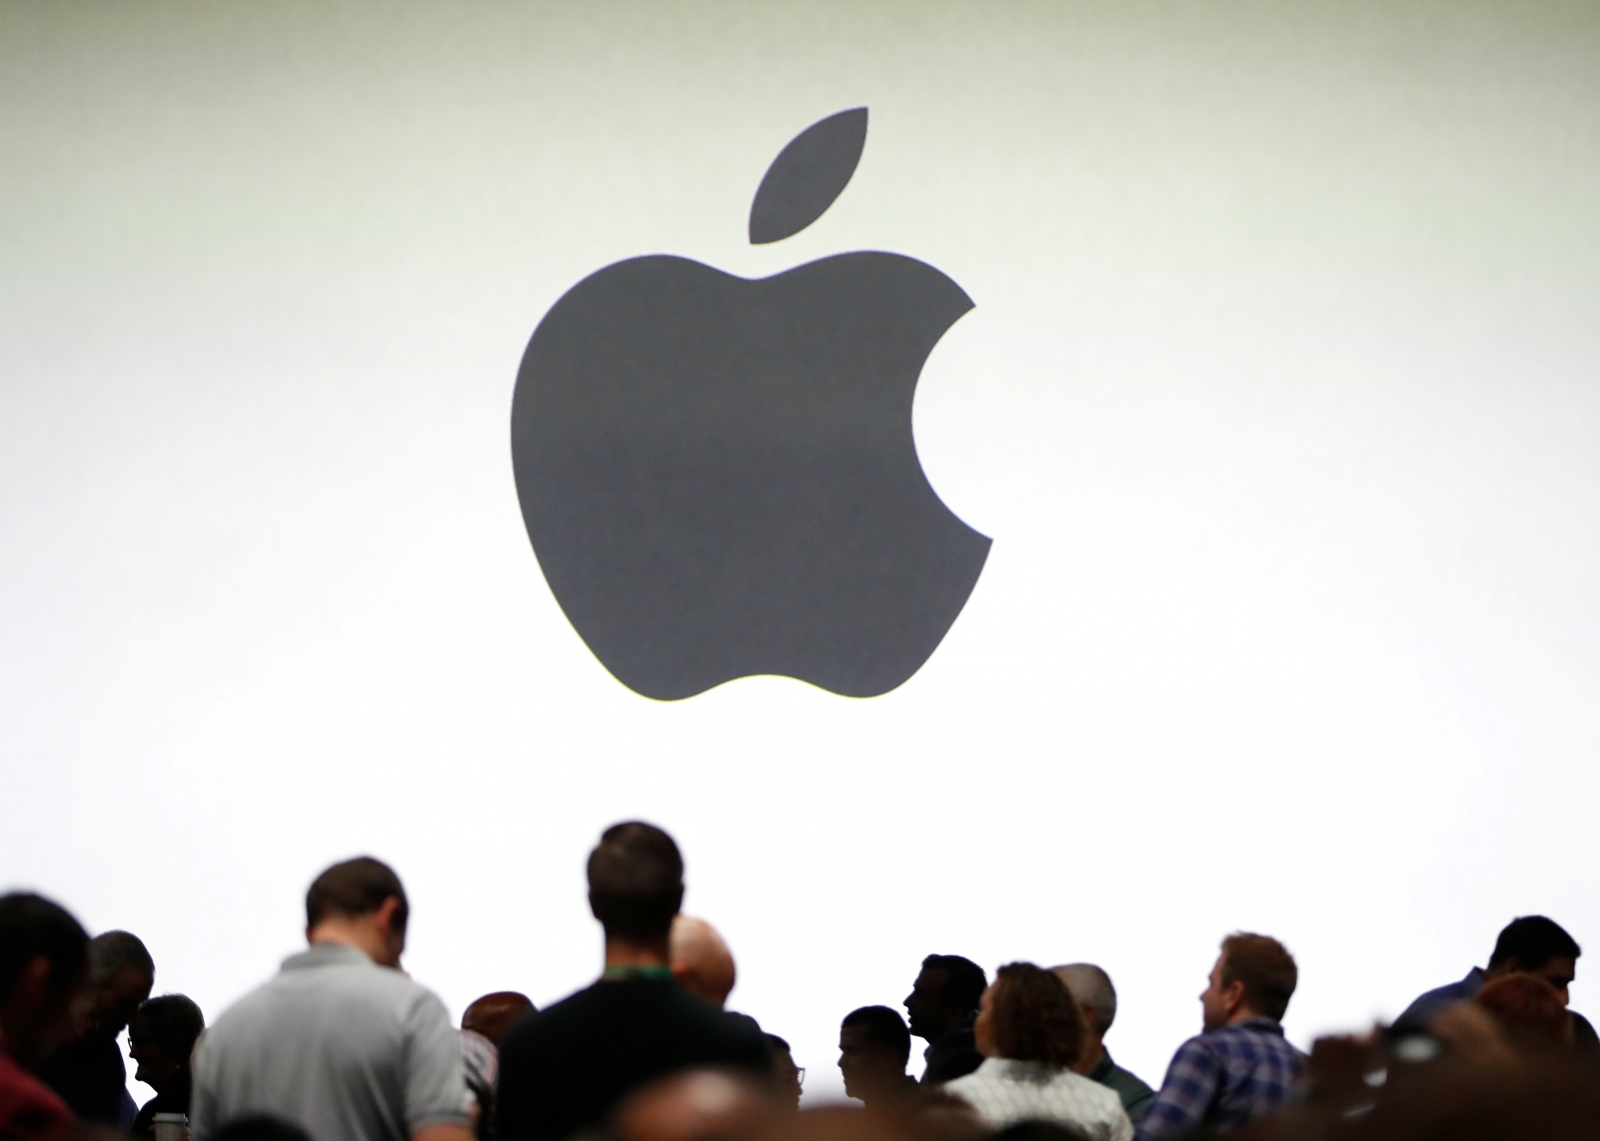 Most Apple 'leaks' come directly from its employees